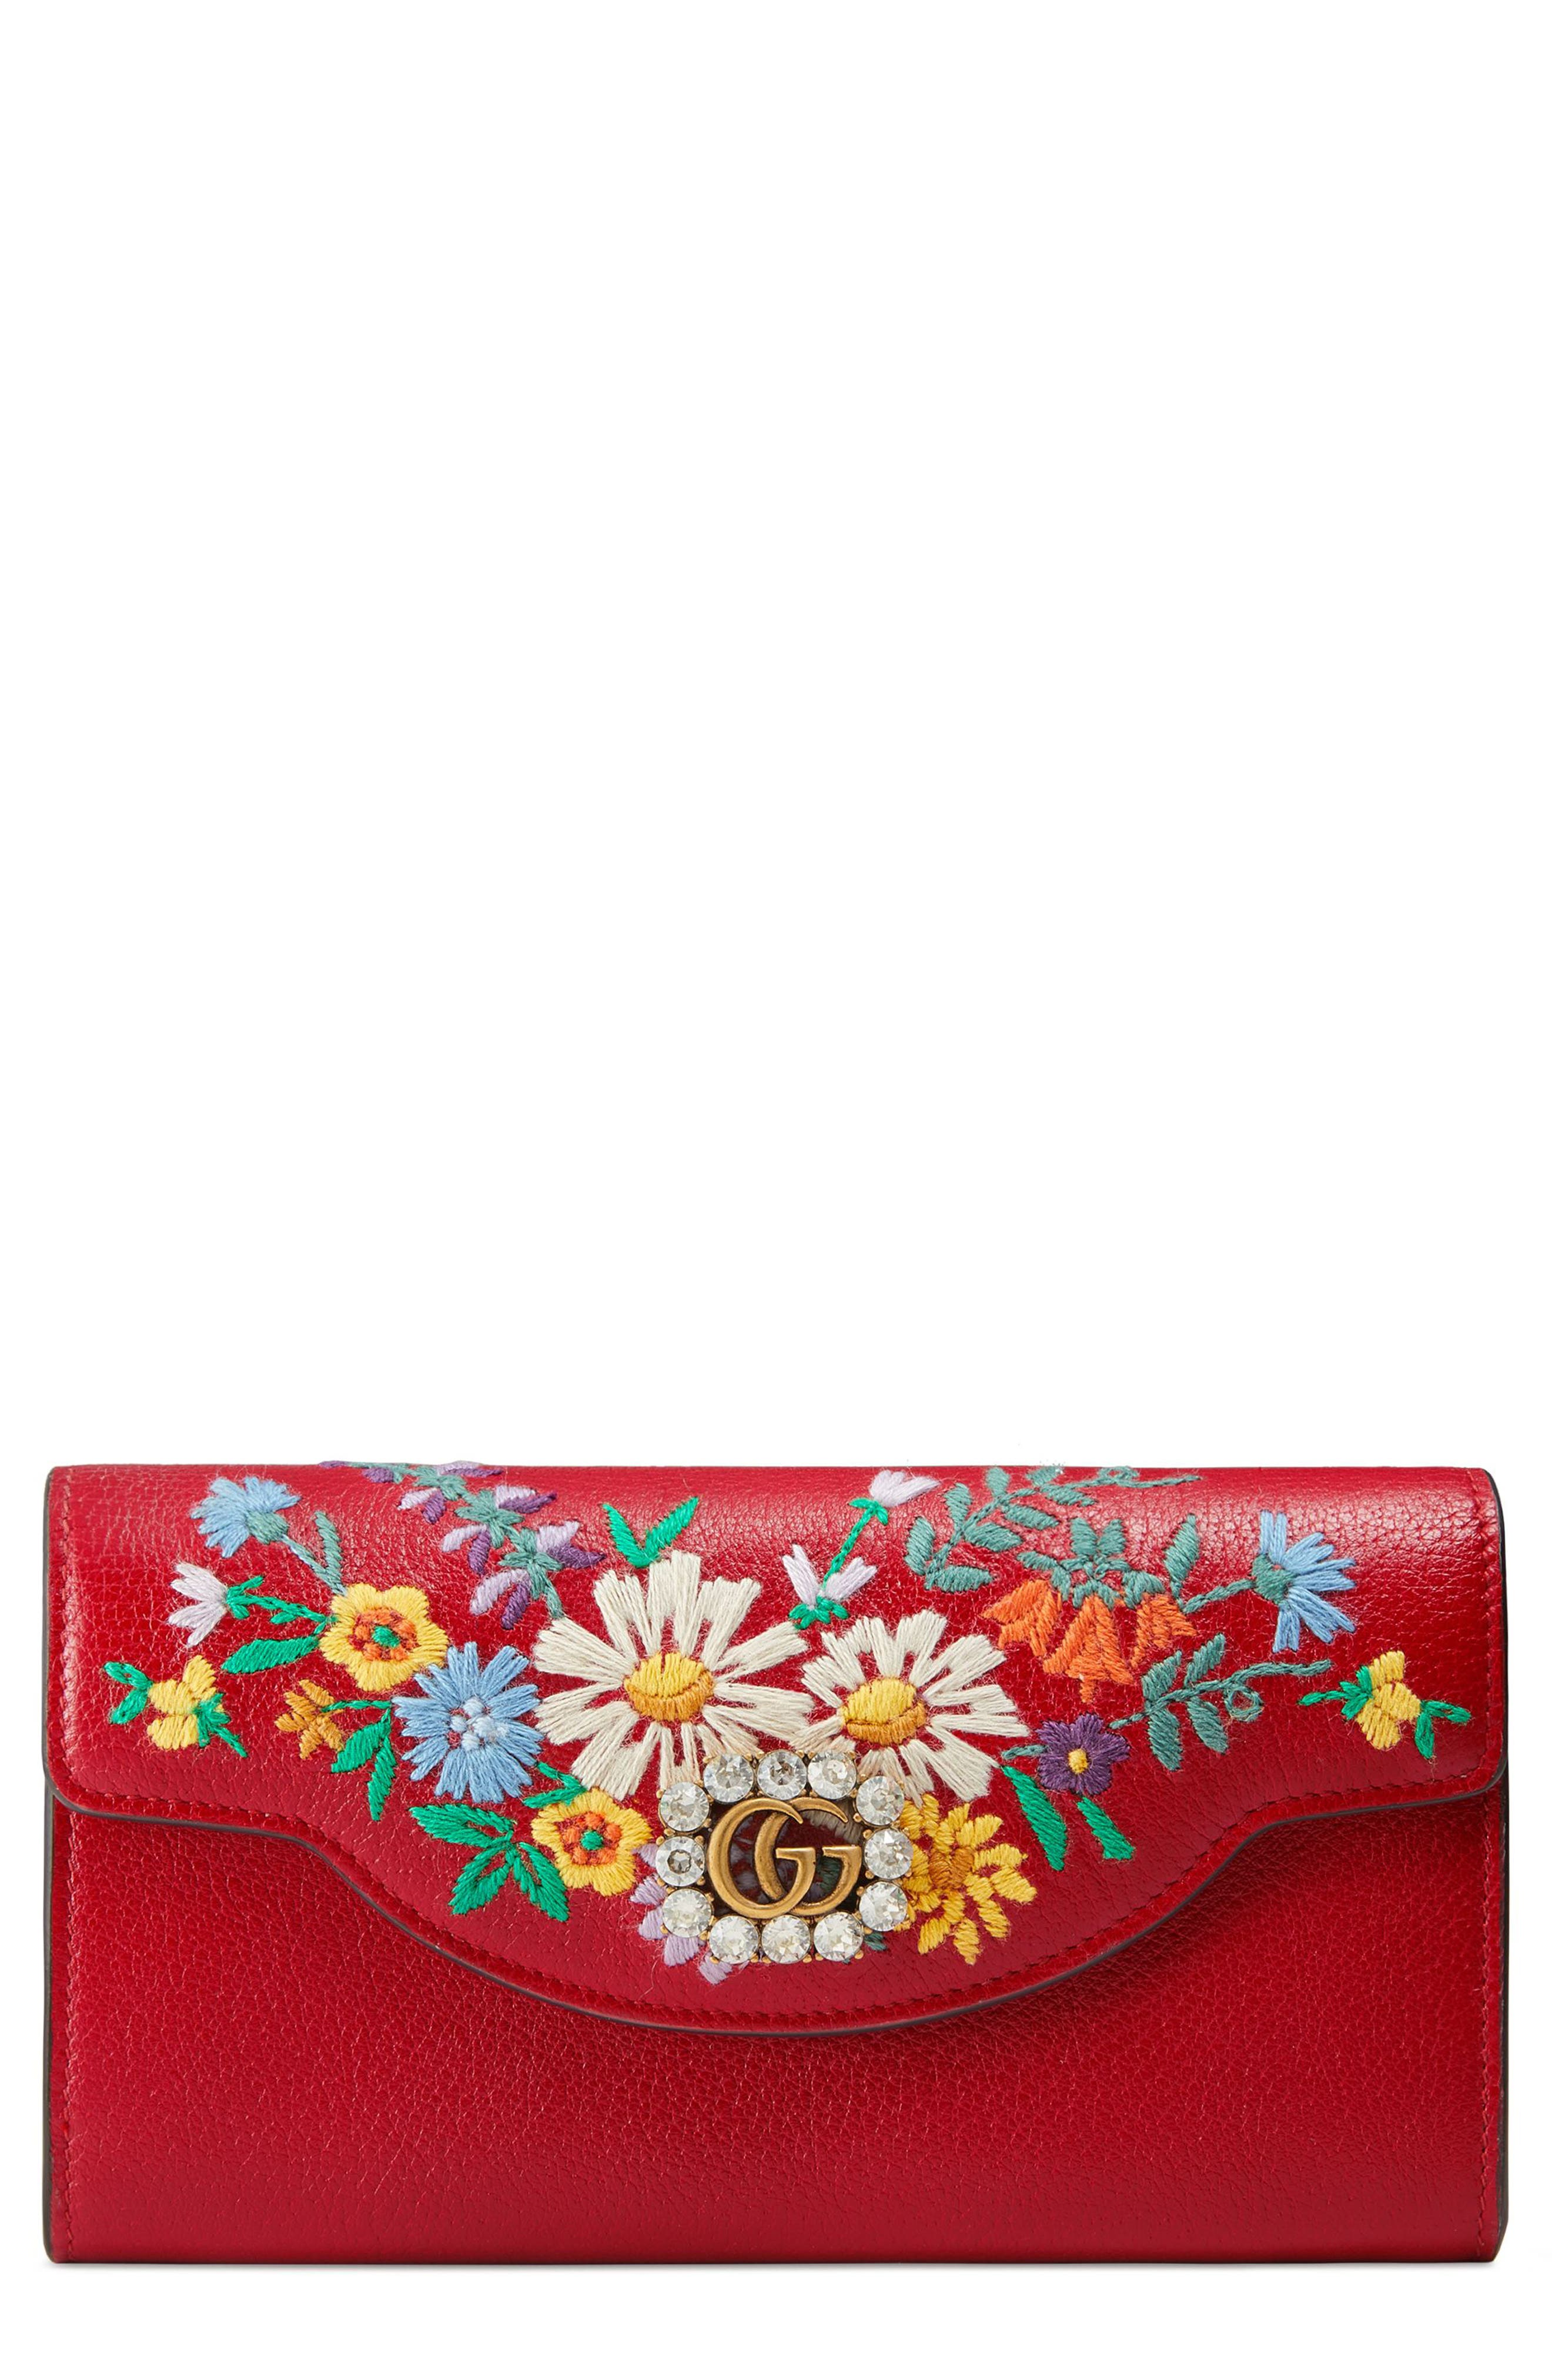 Main Image - Gucci Ricamo Fiori Floral Embroidered Continental Wallet